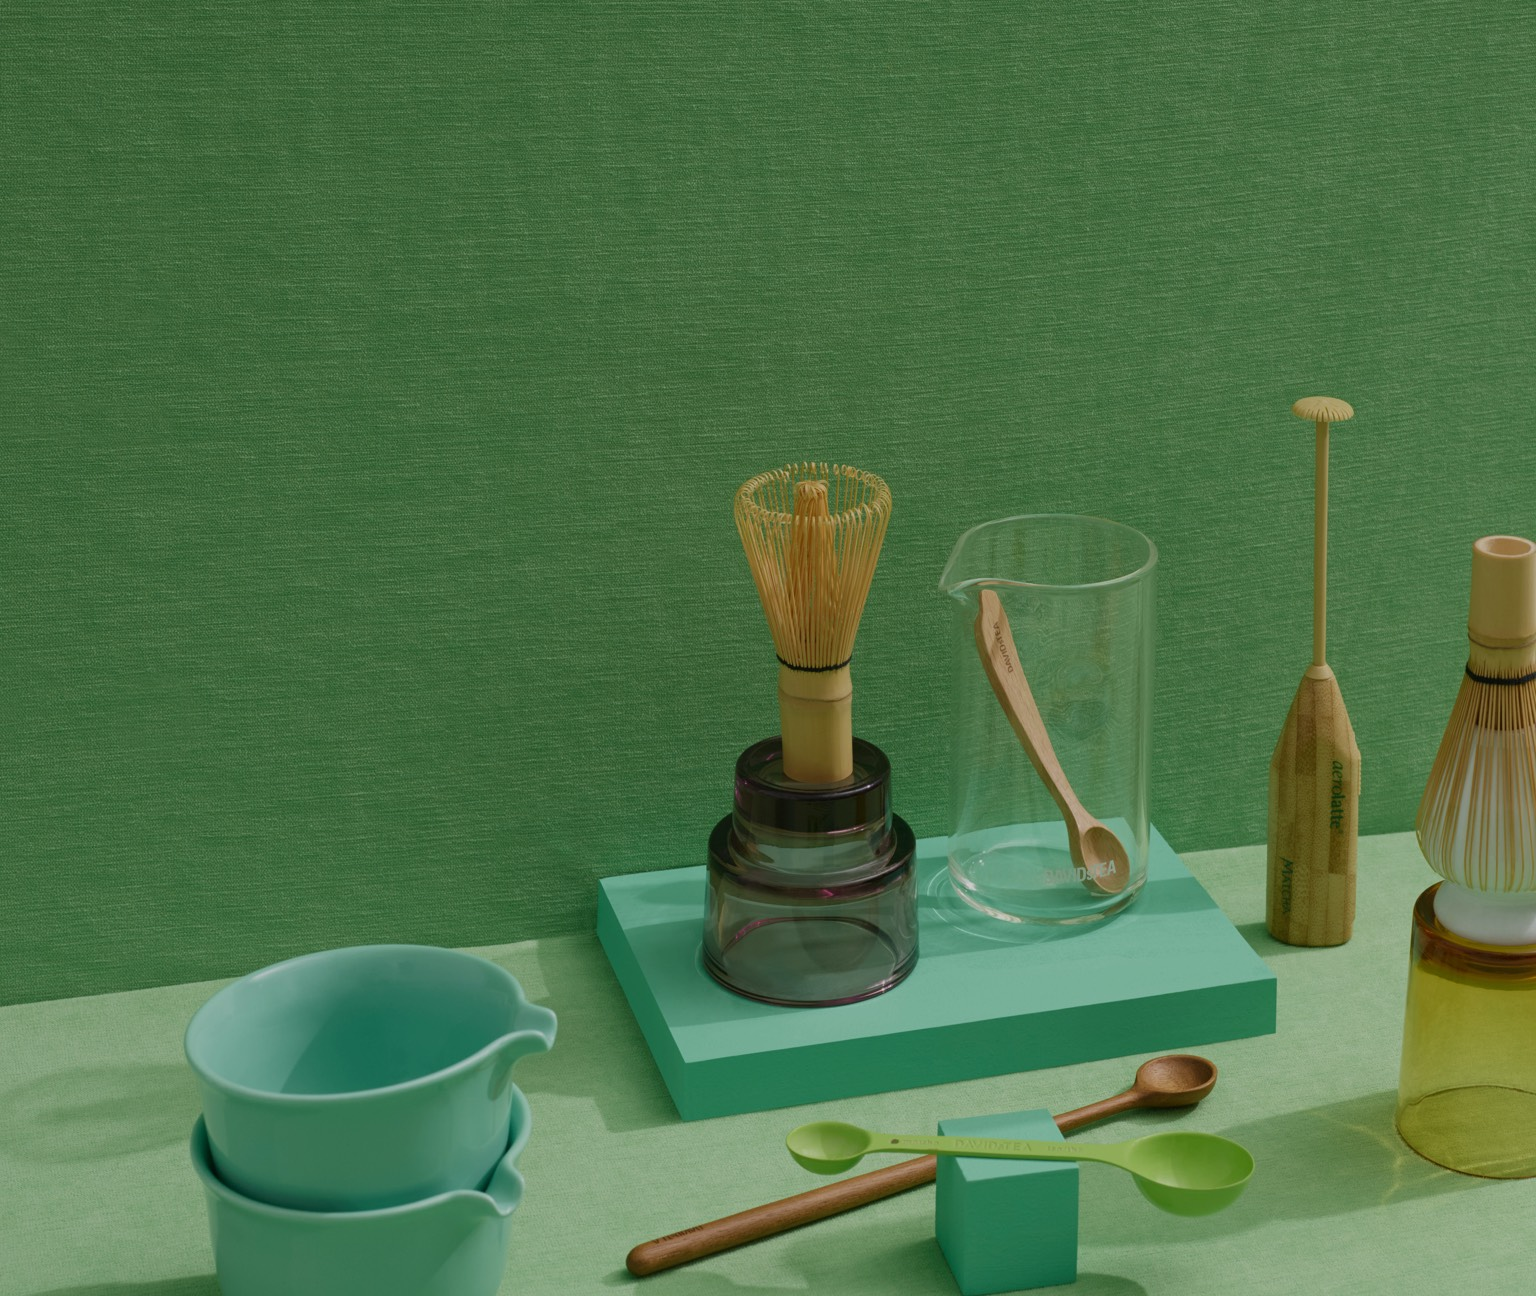 Matcha-making accessories grouped together.